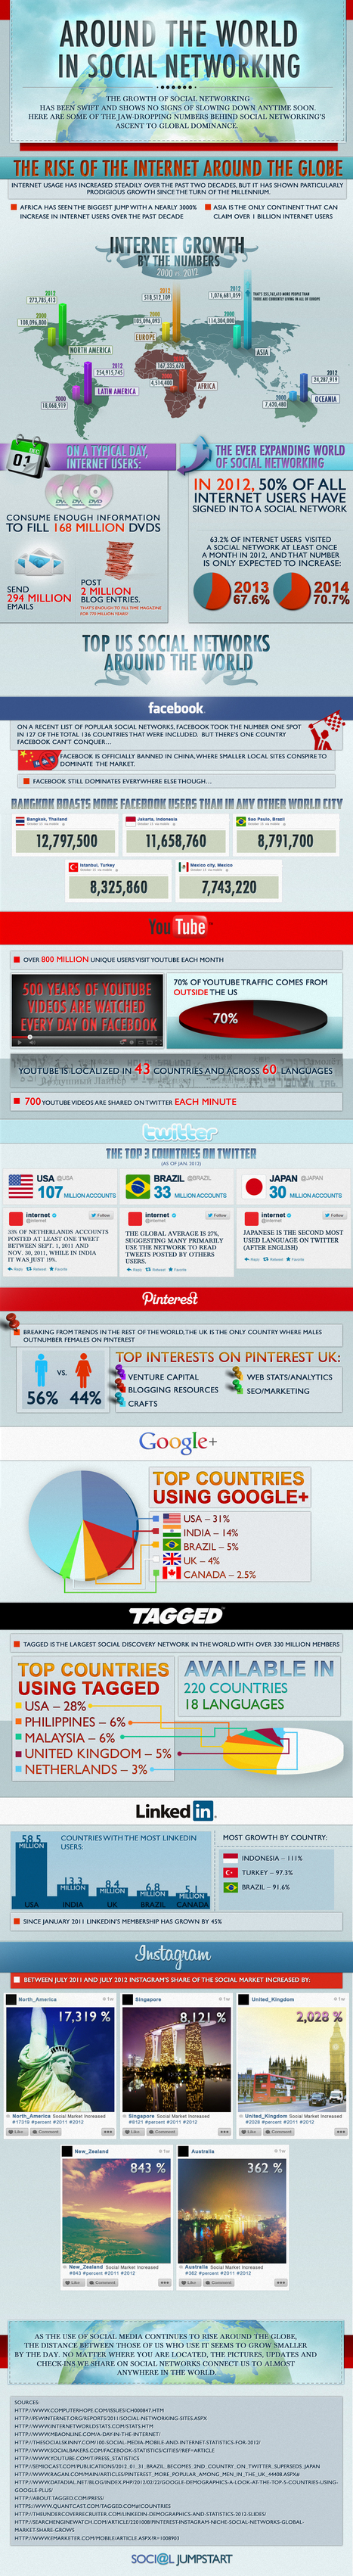 "Facebook, Twitter, Pinterest, Instagram – How Big Is Social Media Around The World? | ""#Google+, +1, Facebook, Twitter, Scoop, Foursquare, Empire Avenue, Klout and more"" 